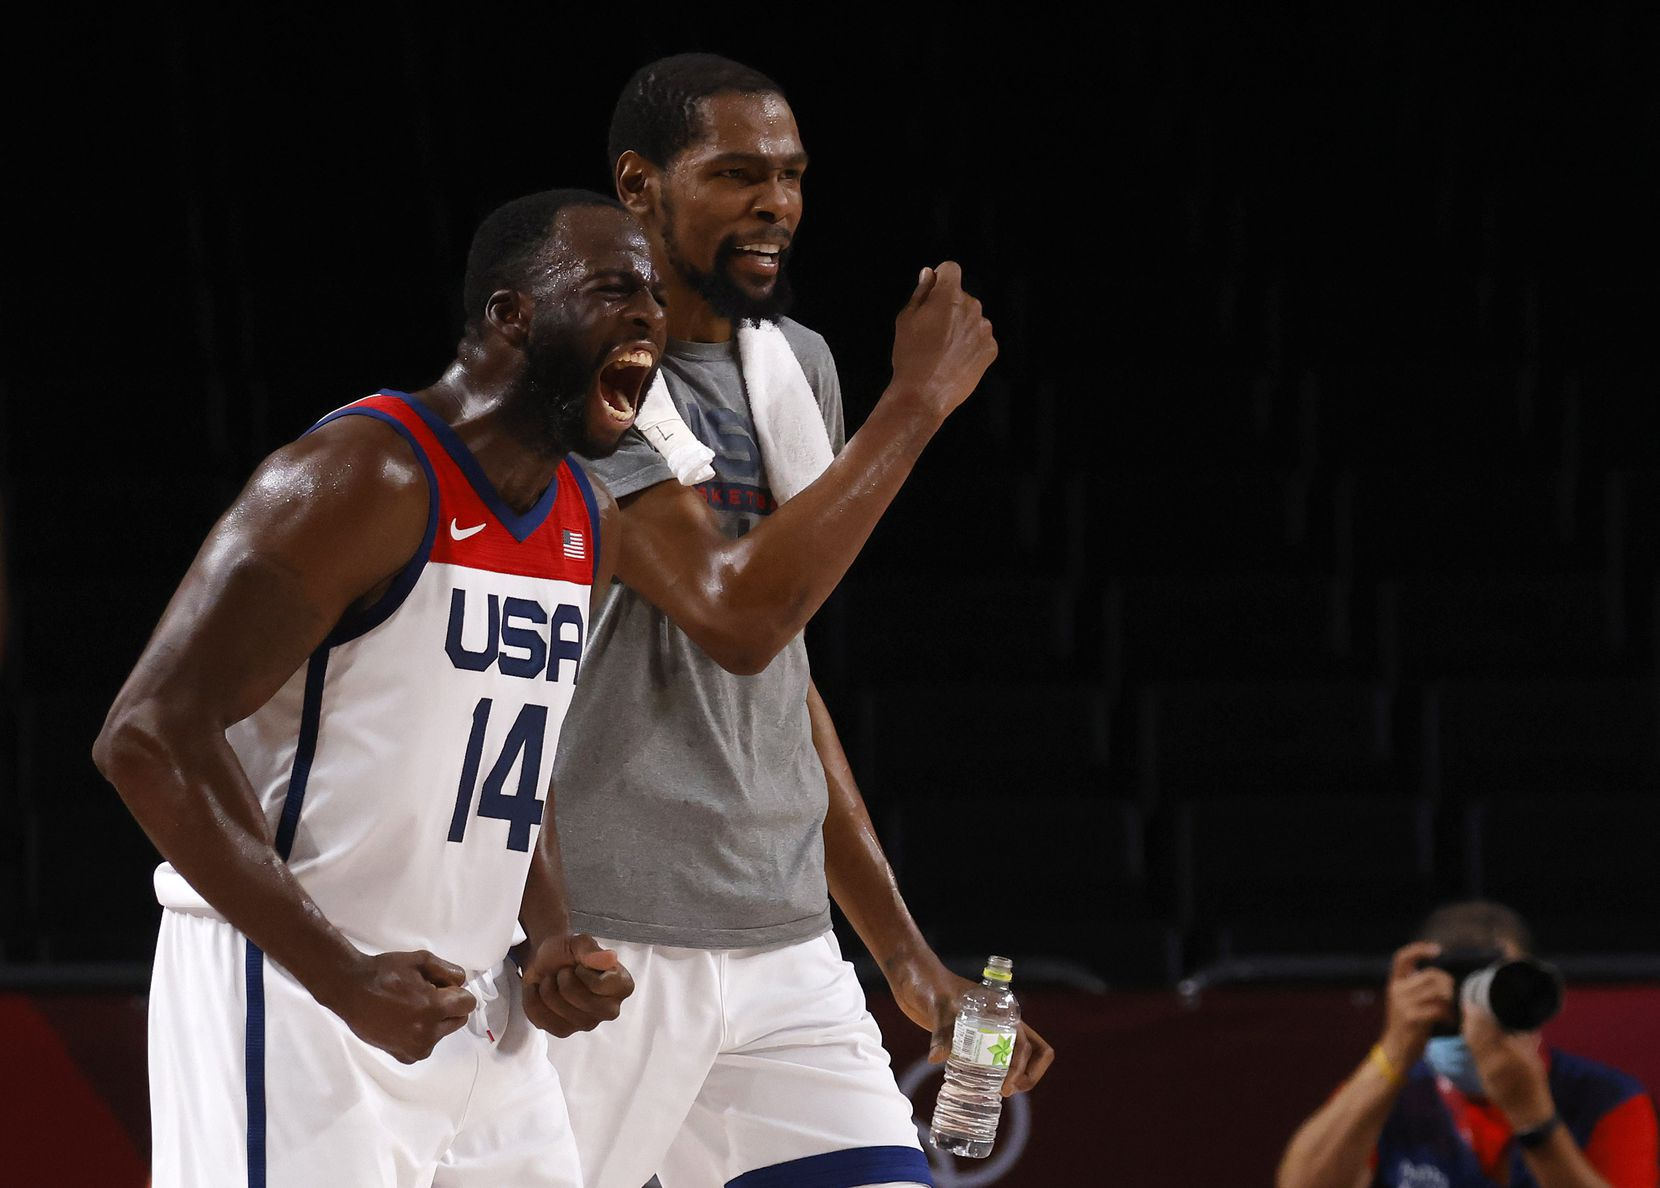 USA's Draymond Green (14) and Kevin Durant (7) celebrate a made basket in a game against Australia during the second half of a men's basketball semifinal at the postponed 2020 Tokyo Olympics at Saitama Super Arena, on Thursday, August 5, 2021, in Saitama, Japan. USA defeated Australia 97-78 to advance to the gold medal game. (Vernon Bryant/The Dallas Morning News)